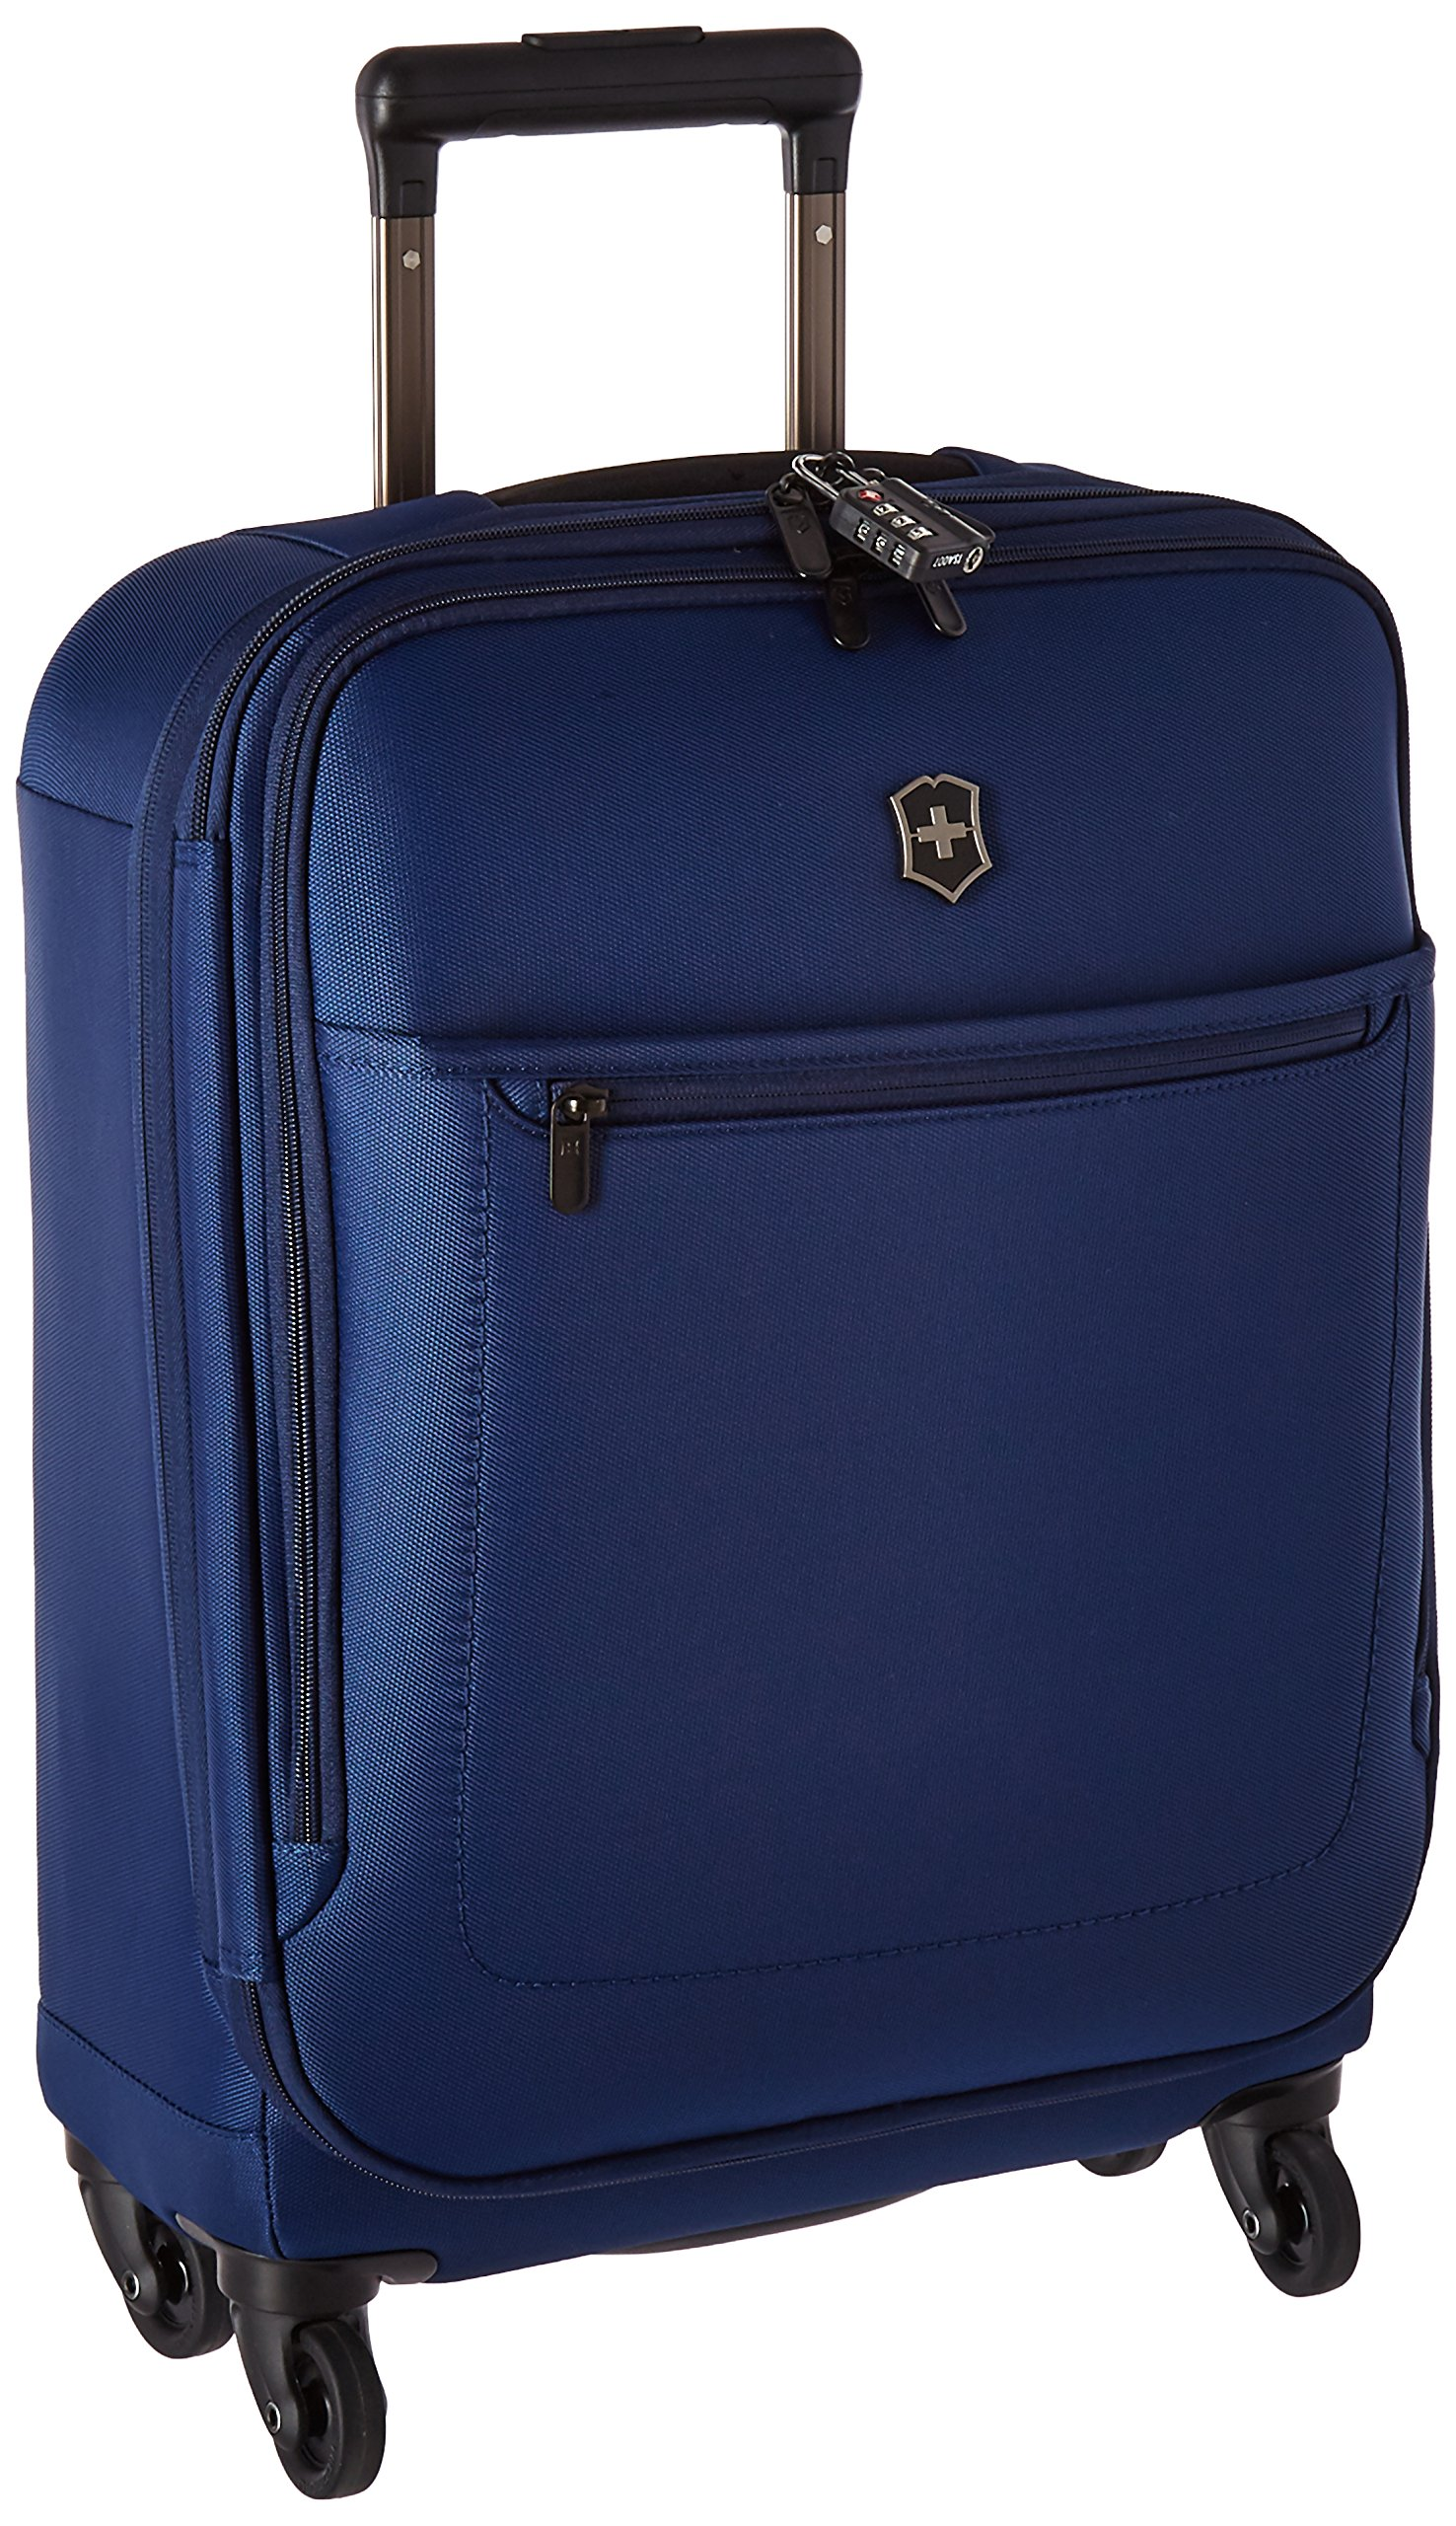 Victorinox Avolve 3.0 Global Expandable Carry-on Spinner, Blue by Victorinox